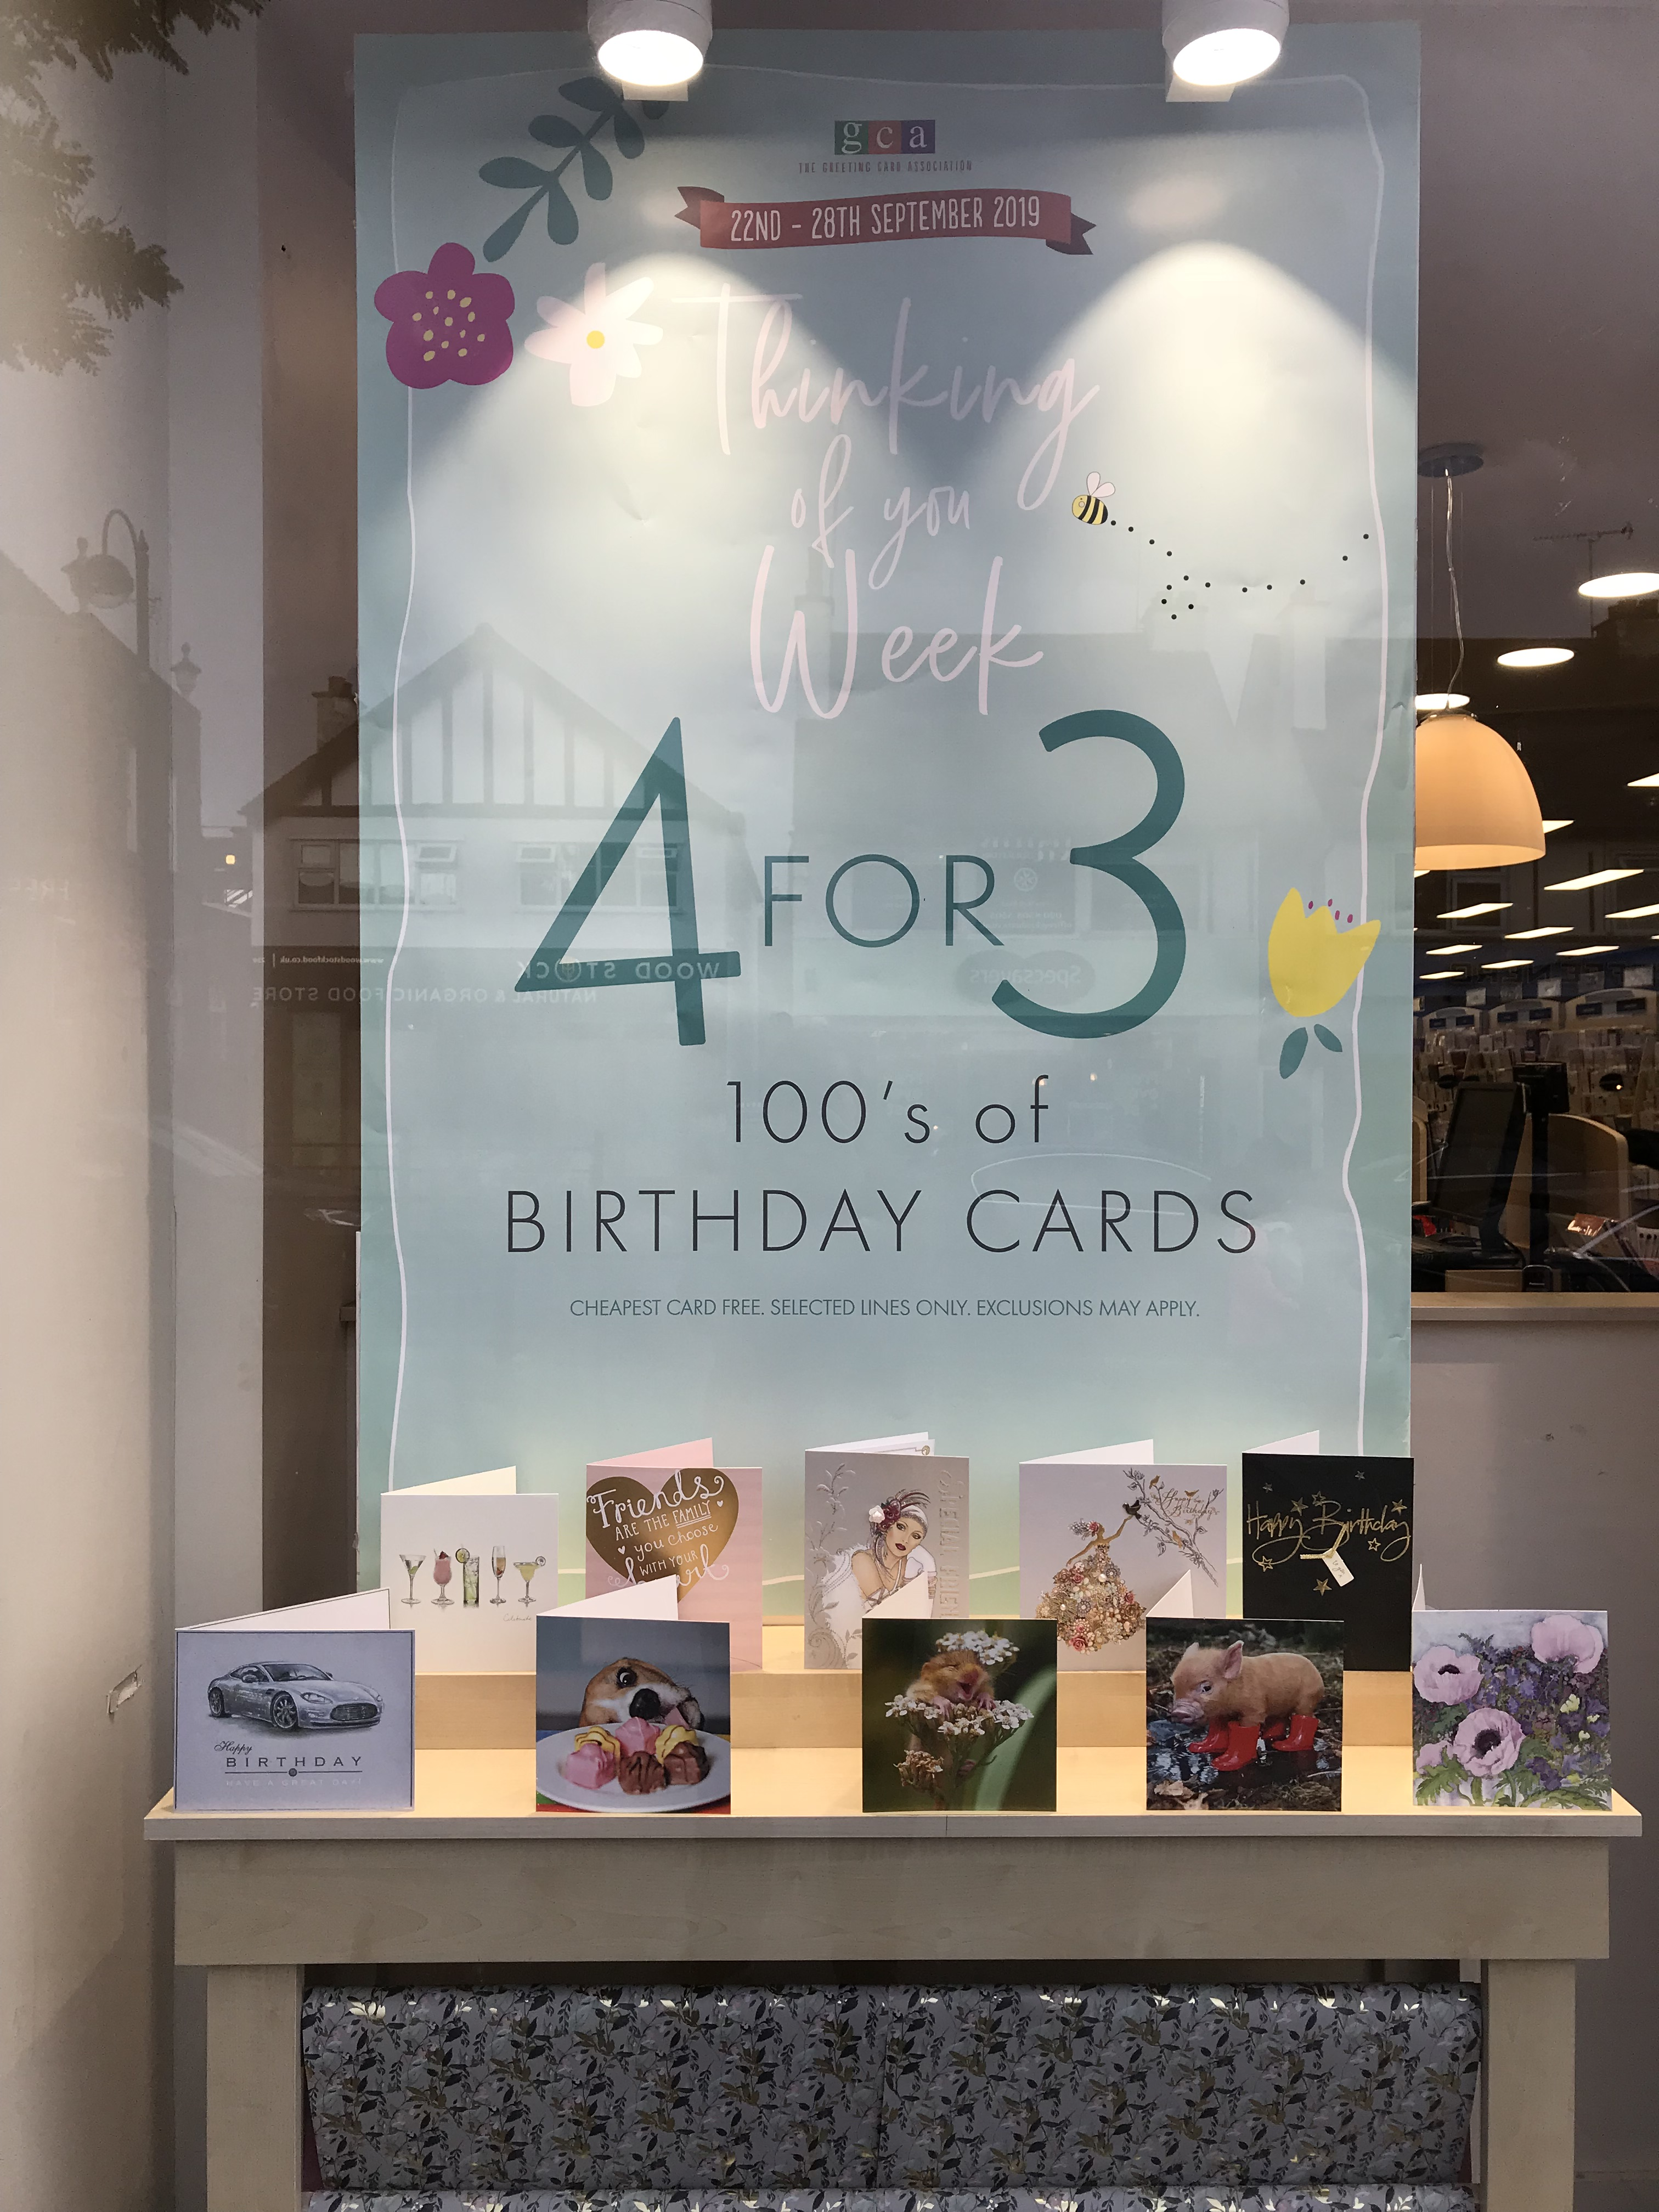 Above: Clintons got behind the recent Thinking of You Week, with a special '4 for 3' offer on many everyday cards.